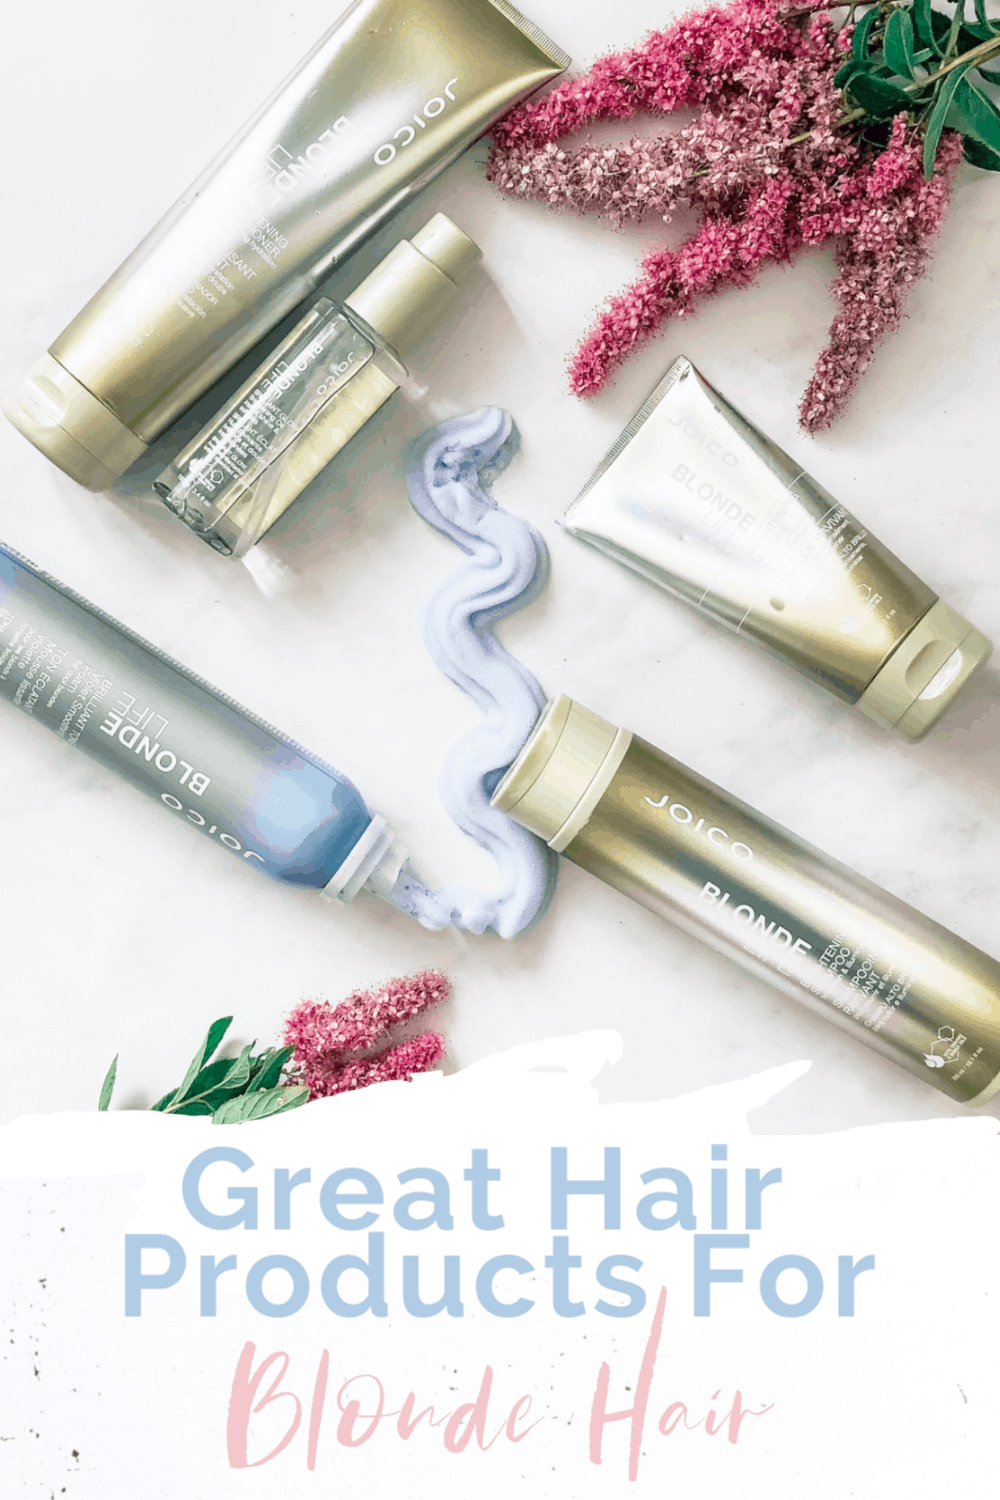 Gereat hair products for keeping hair blonde and healthy